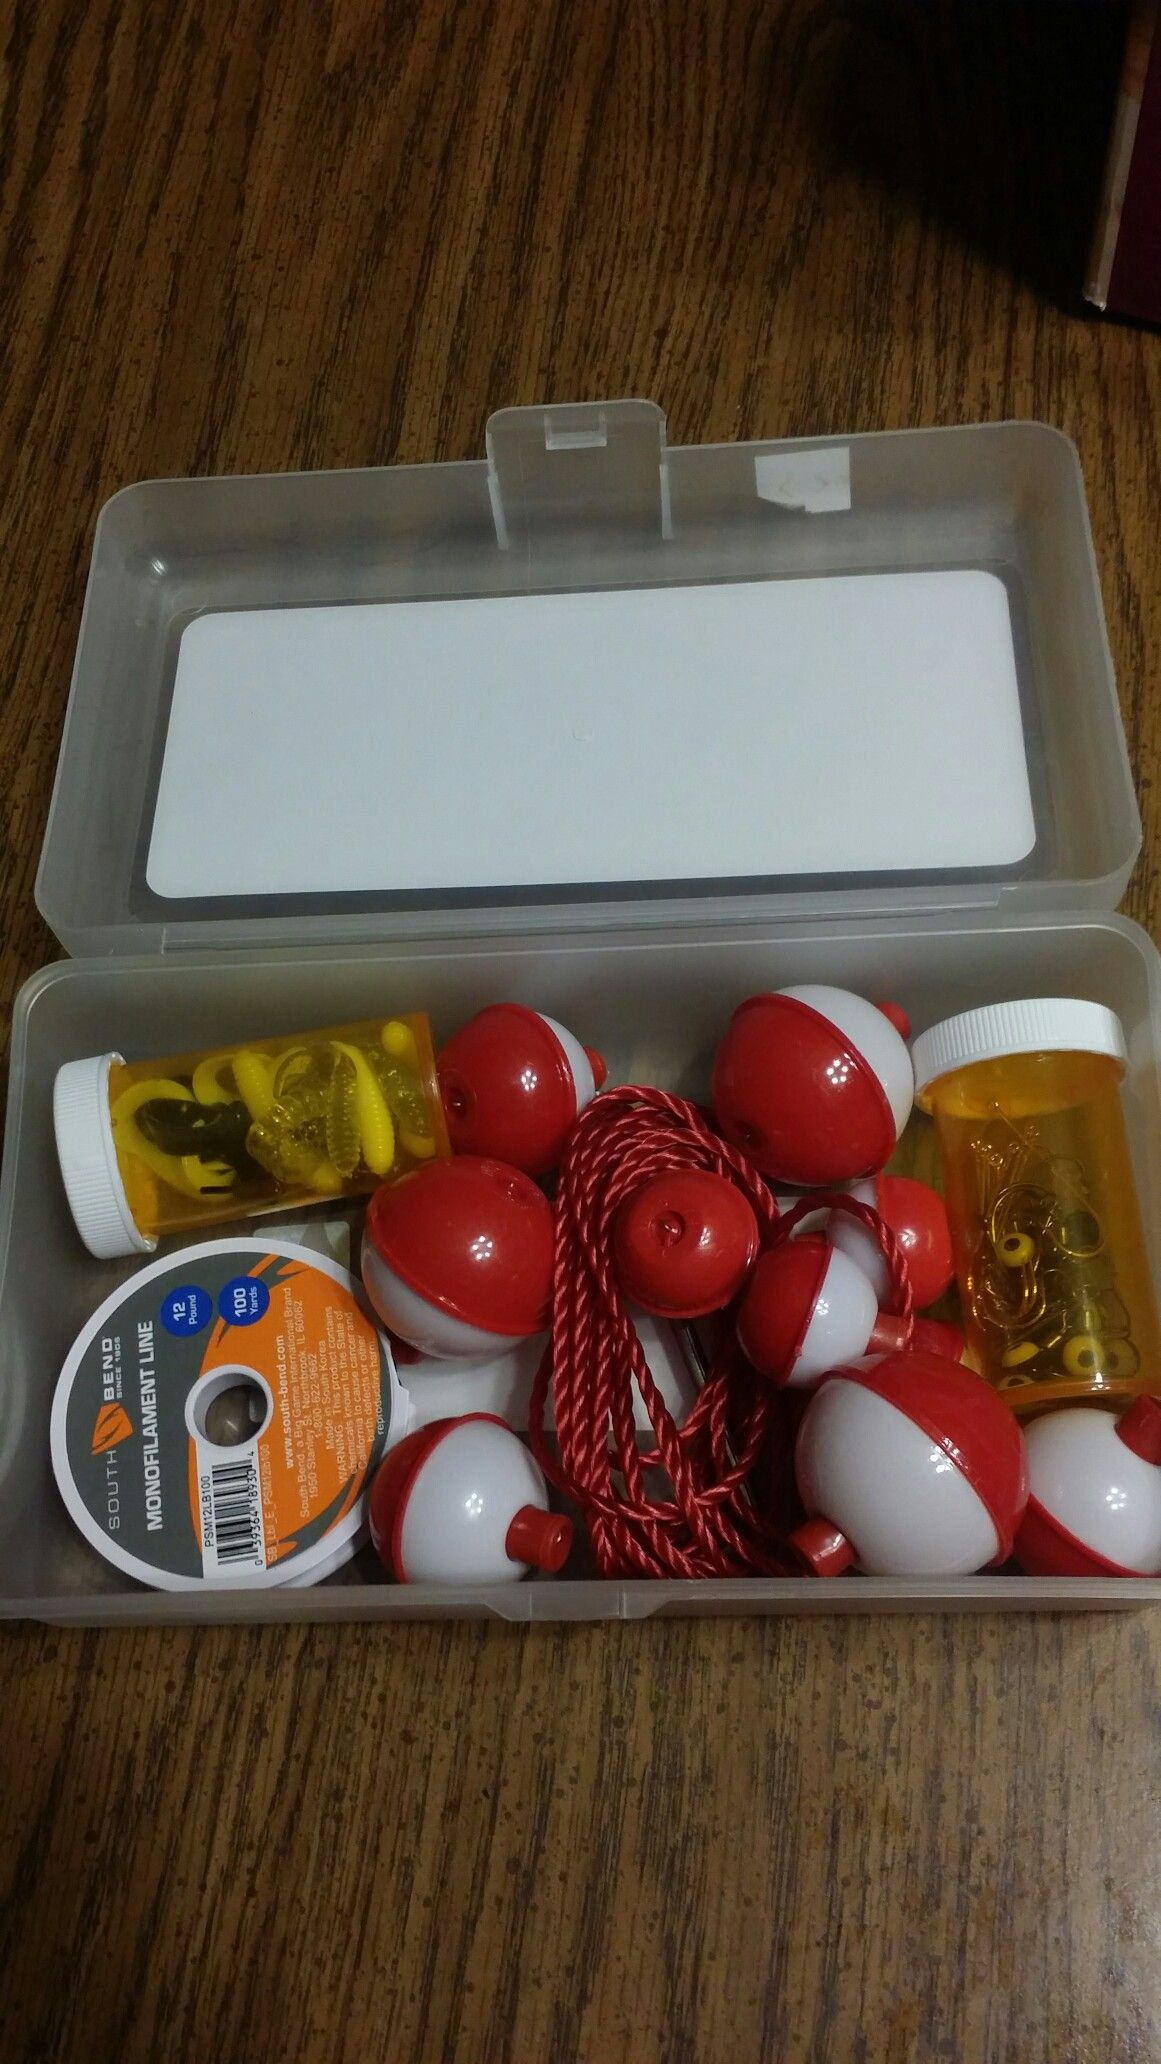 Fishing kit for 10-14 year old boy Operation Christmas Child ...